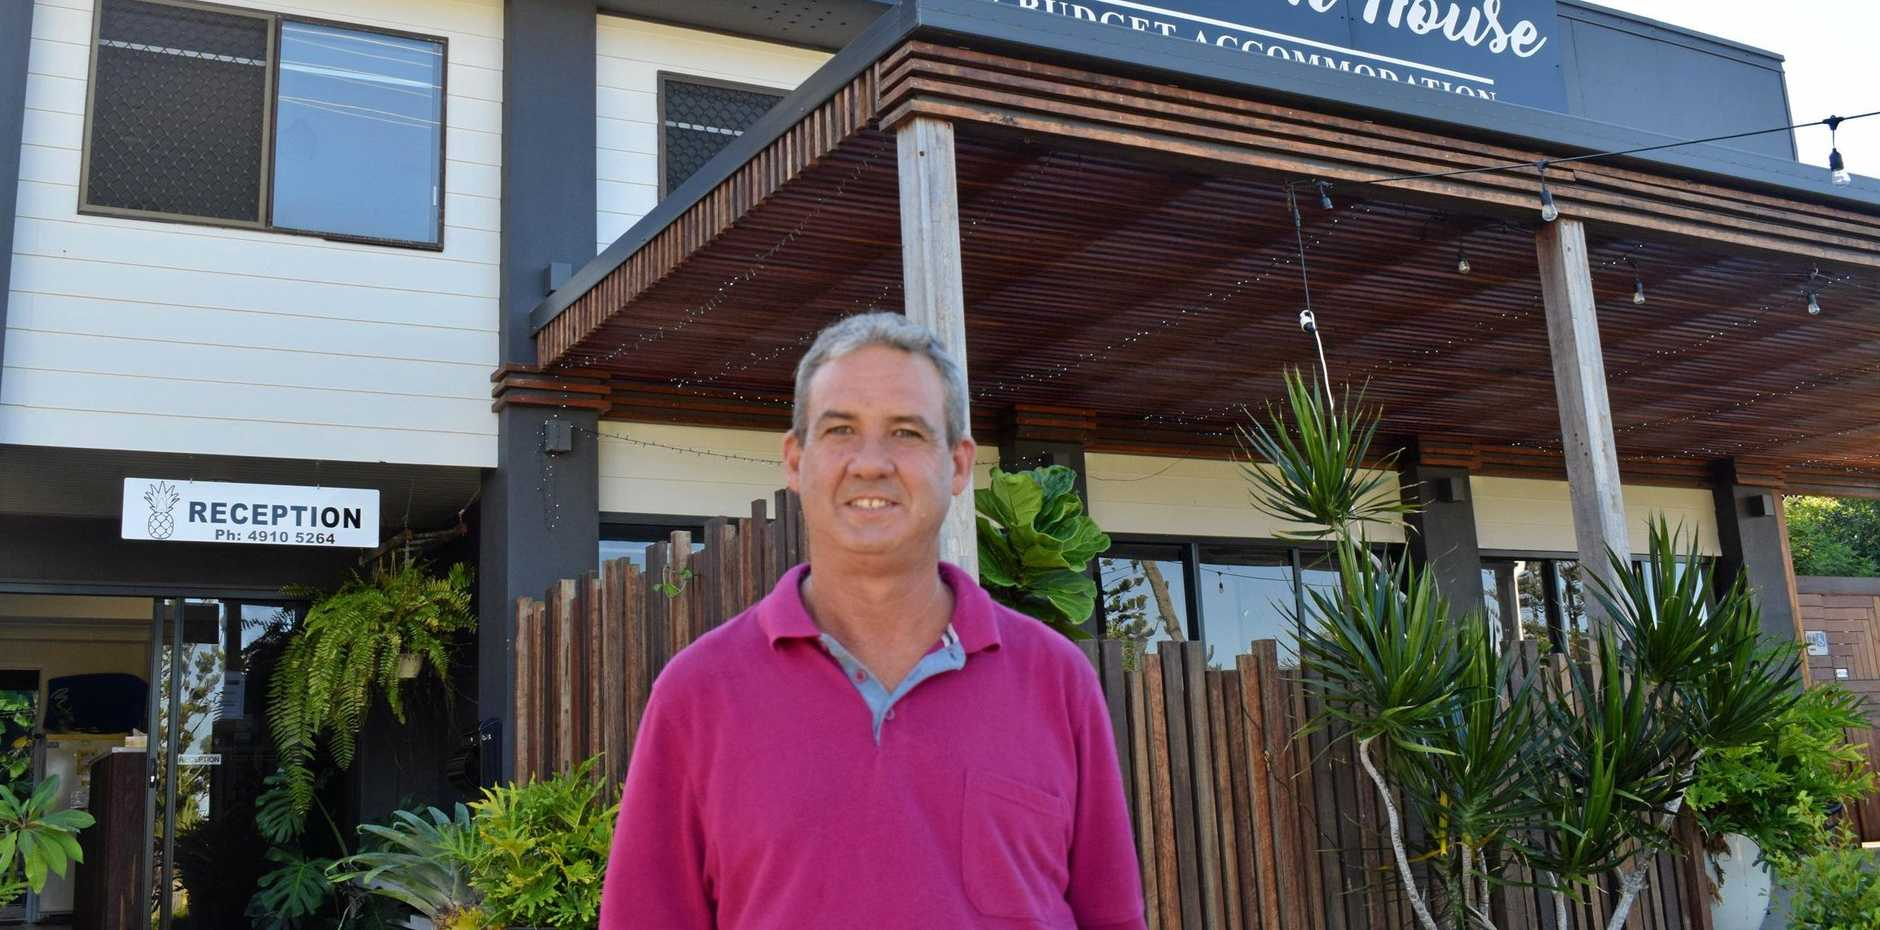 TOP SERVICE: Yeppoon Beach House's James Skuthorpe is stoked with the recent top rating of 9.6 on booking.com from good guest reviews.